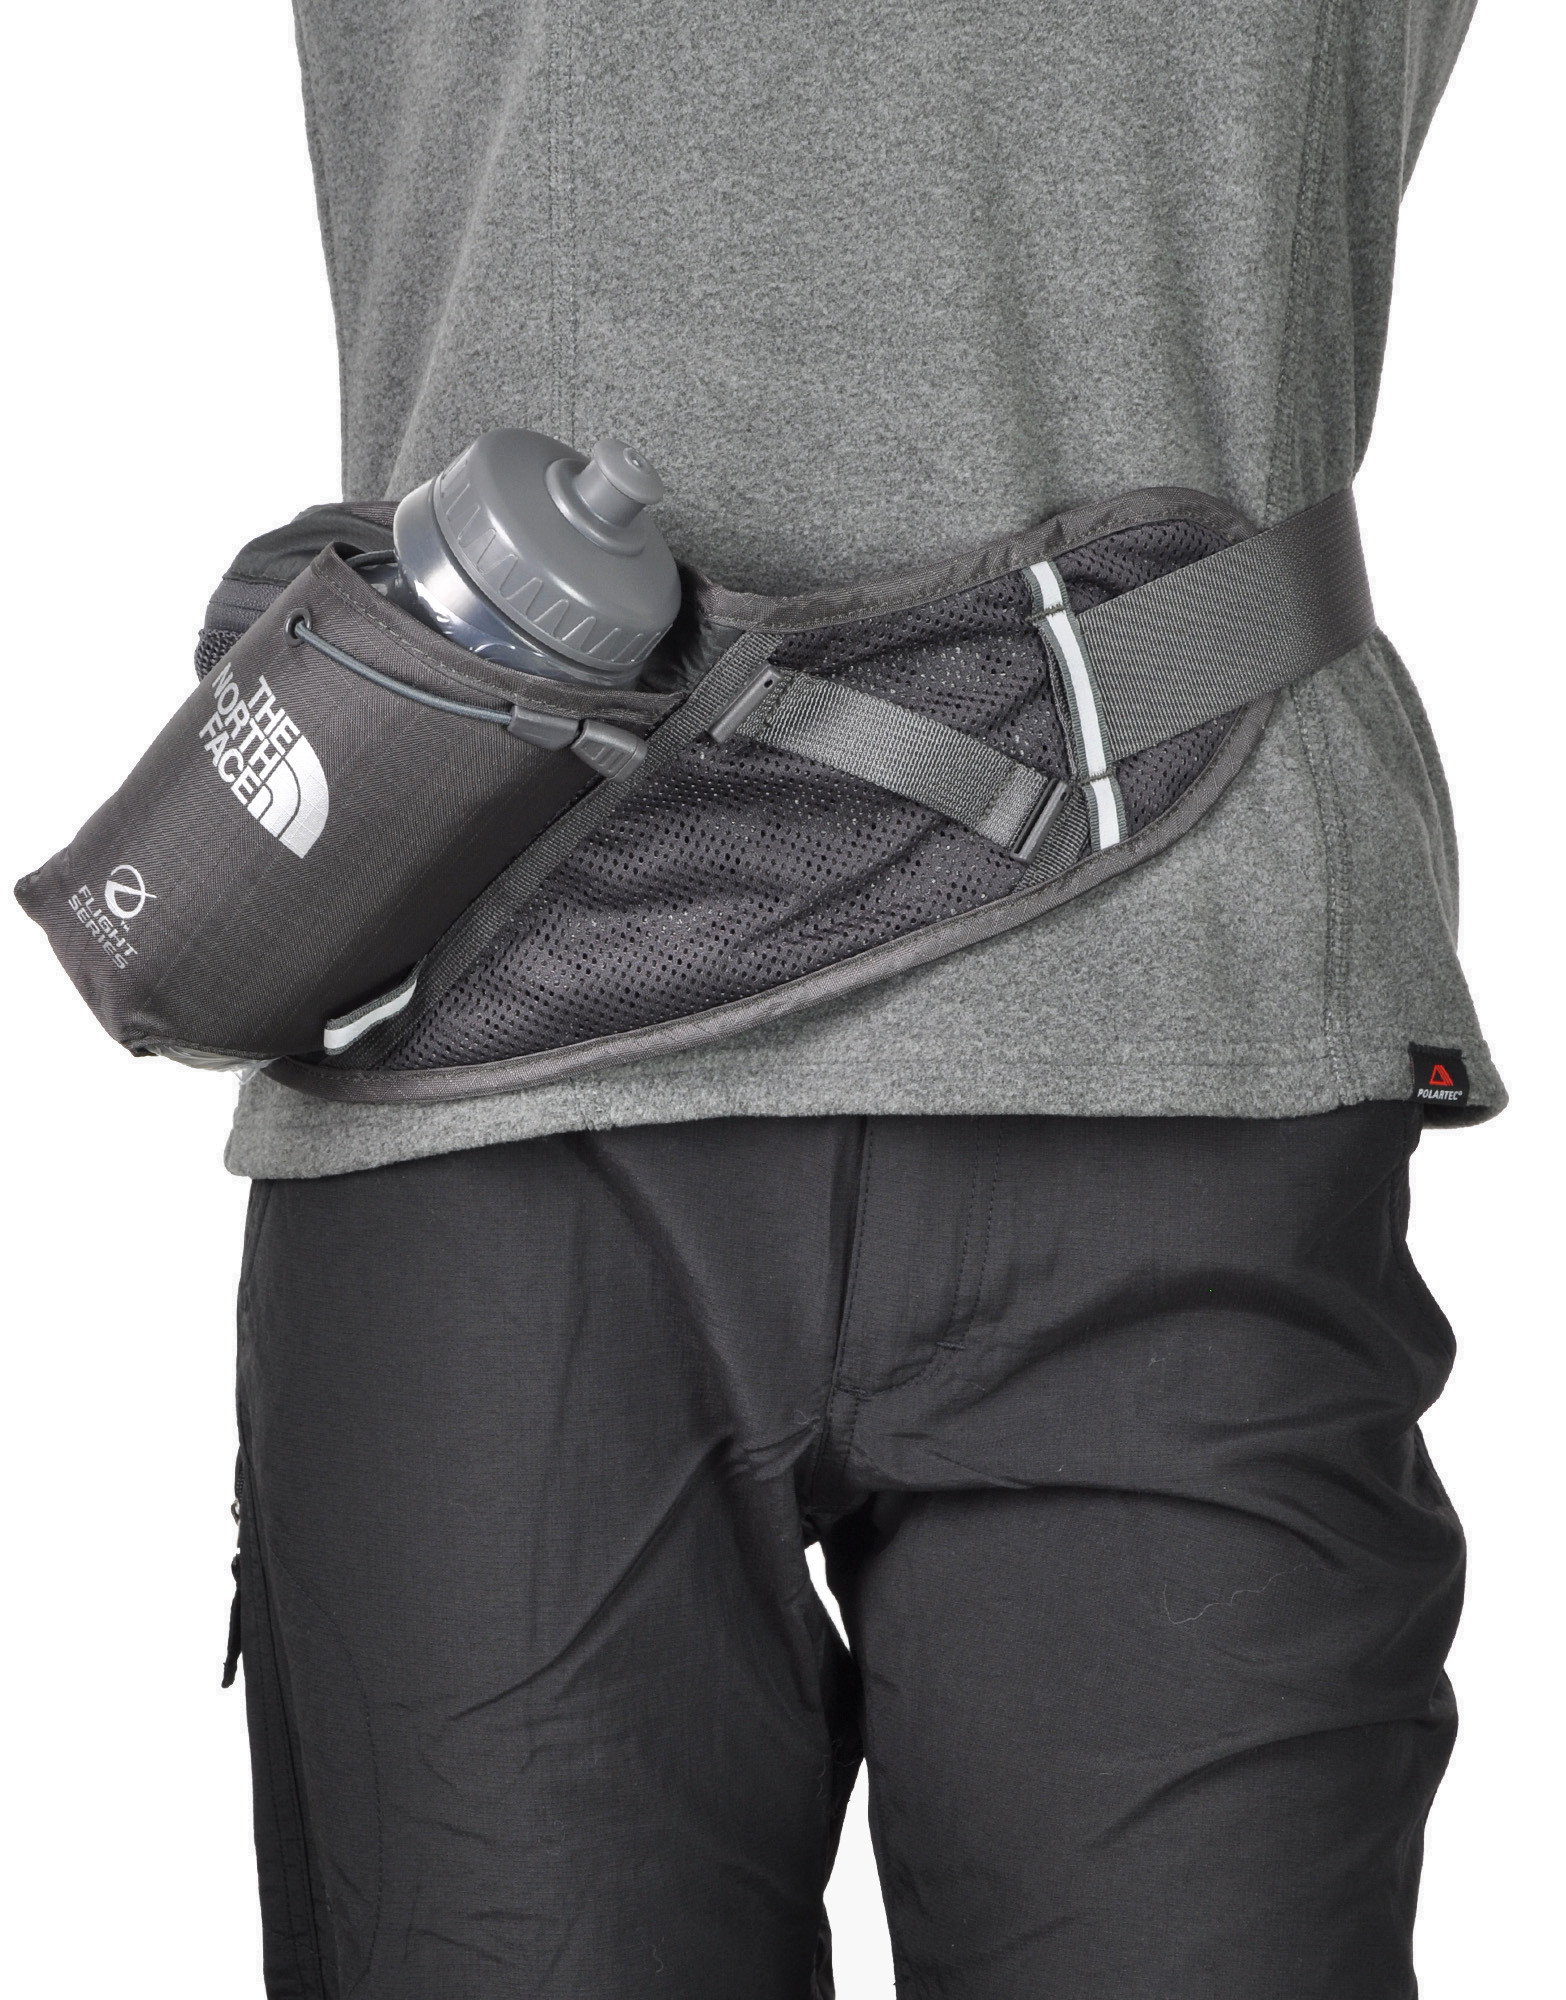 a1caa090f Enduro Belt 1 by THE NORTH FACE (colour: grey)